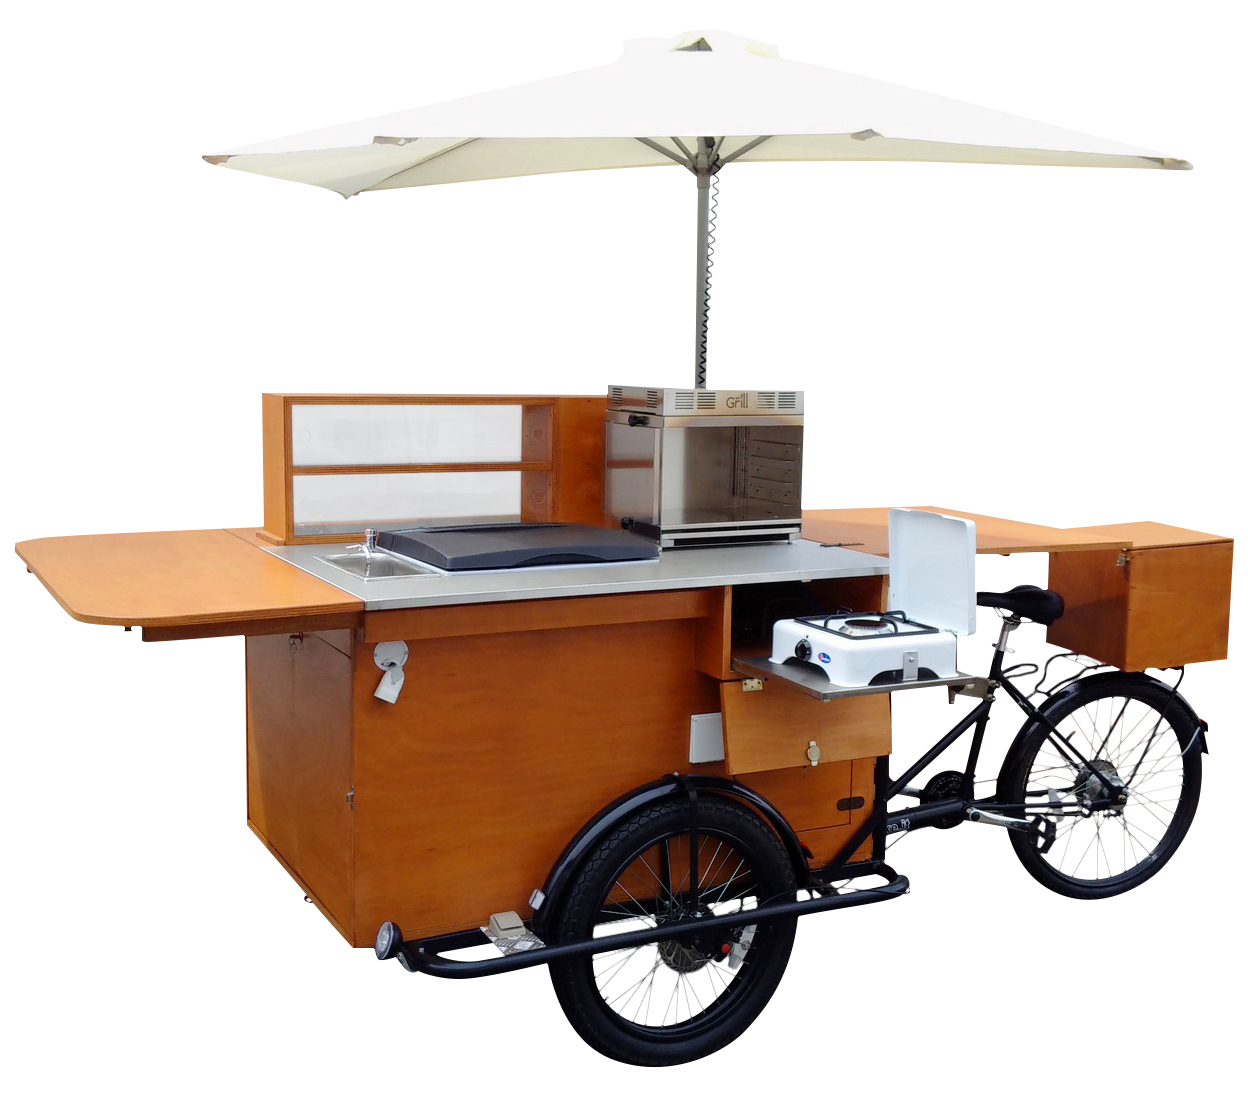 Street_Food_Bike_Cargo_Bike_Banco_Legno_1-a